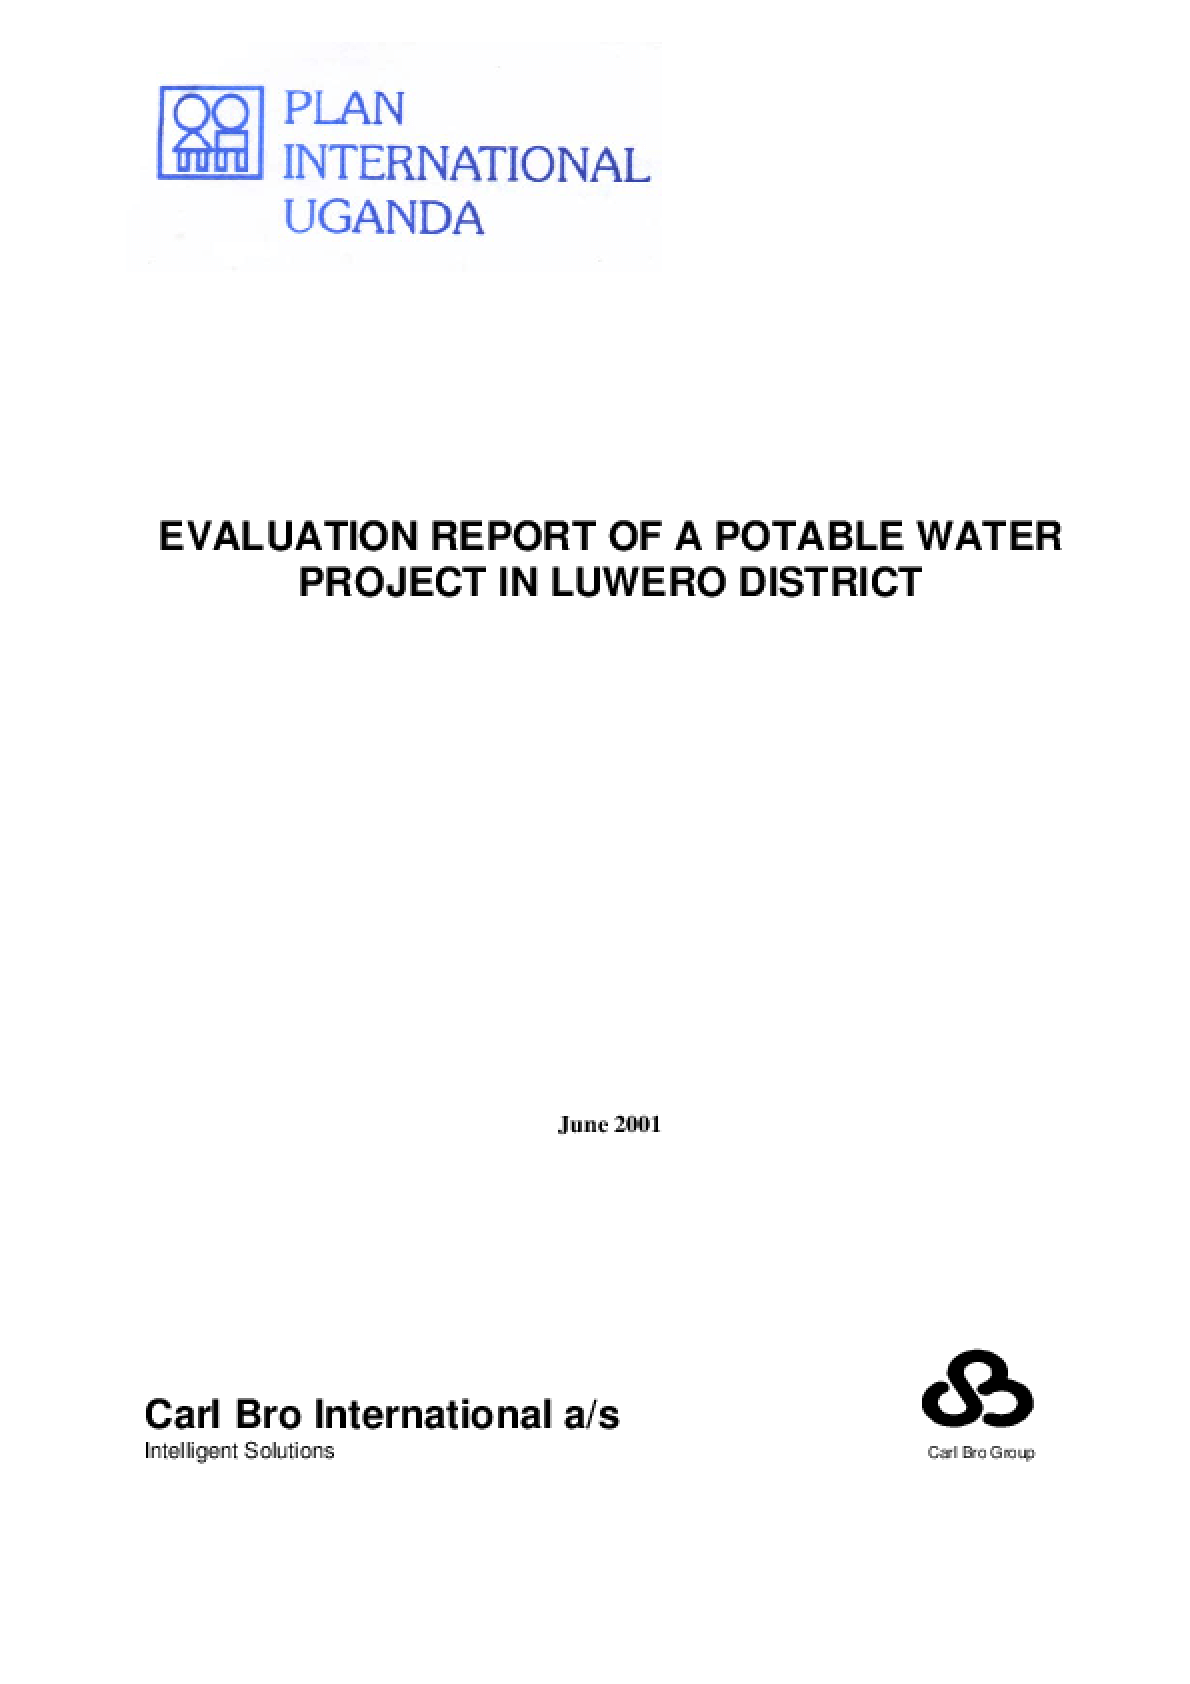 Evaluation Report of a Potable Water Project in Luwero District